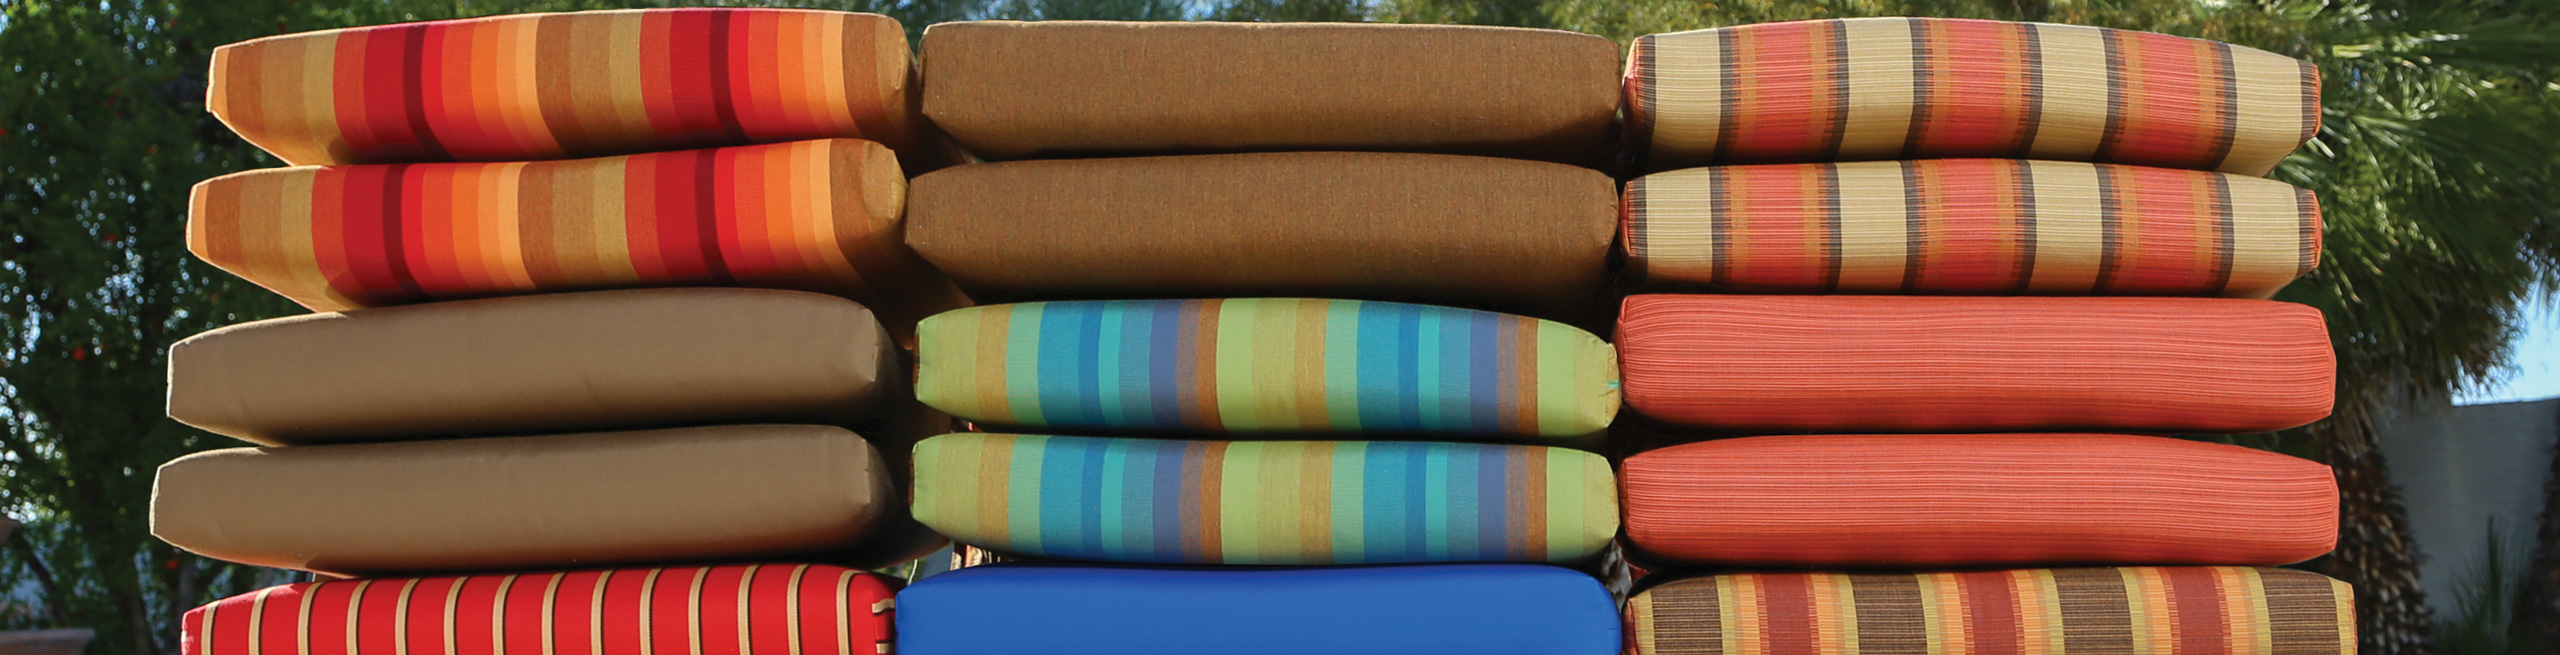 Sunbrella Seat Cushions | Patio Replacement Cushions Sunbrella | Sunbrella Cushion Covers